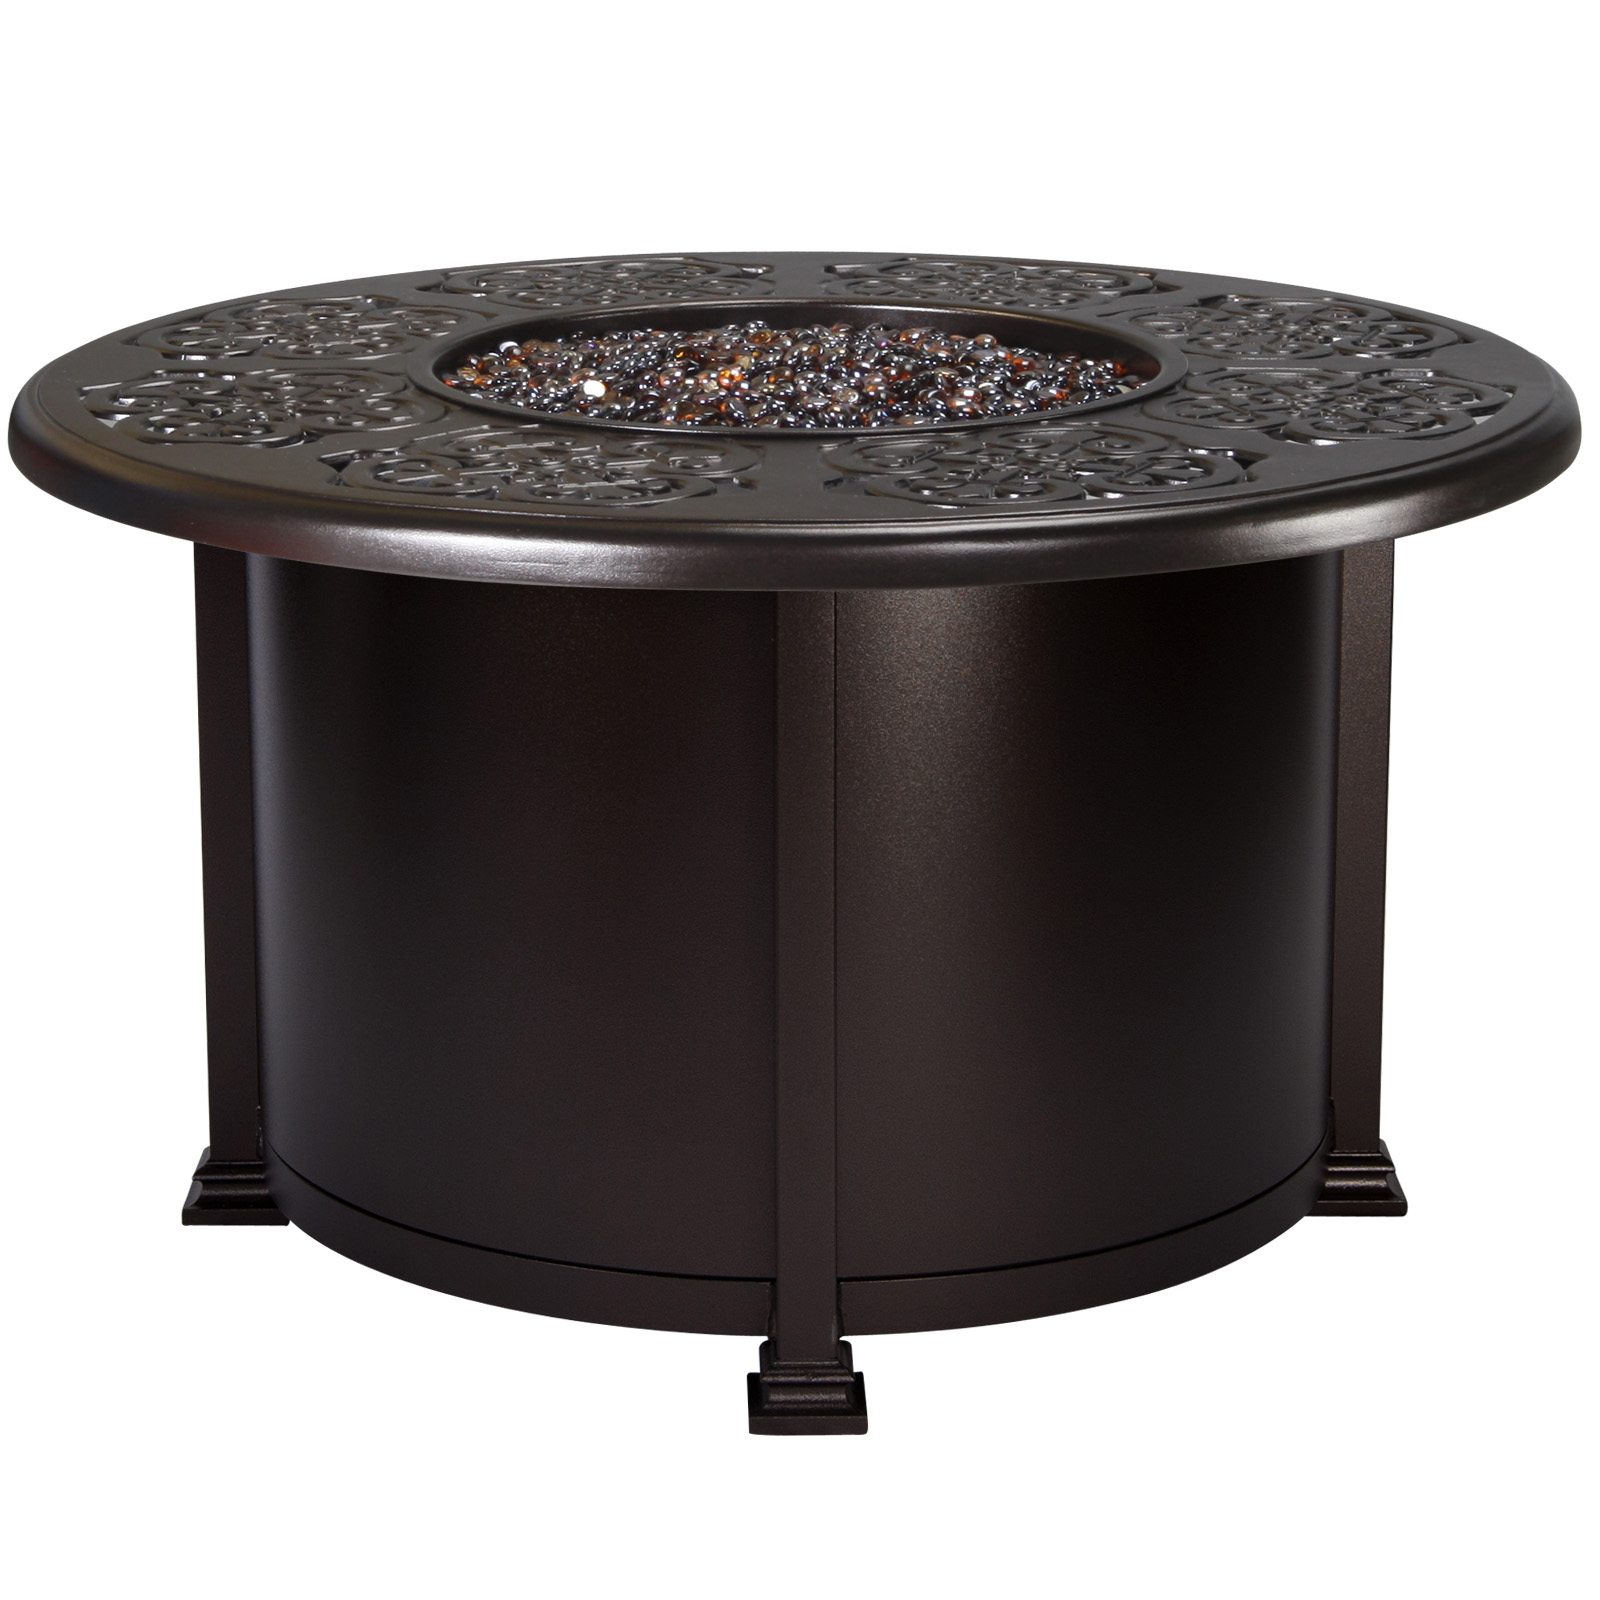 Ow Lee Hacienda 54 Quot Round Chat Height Fire Pit Table